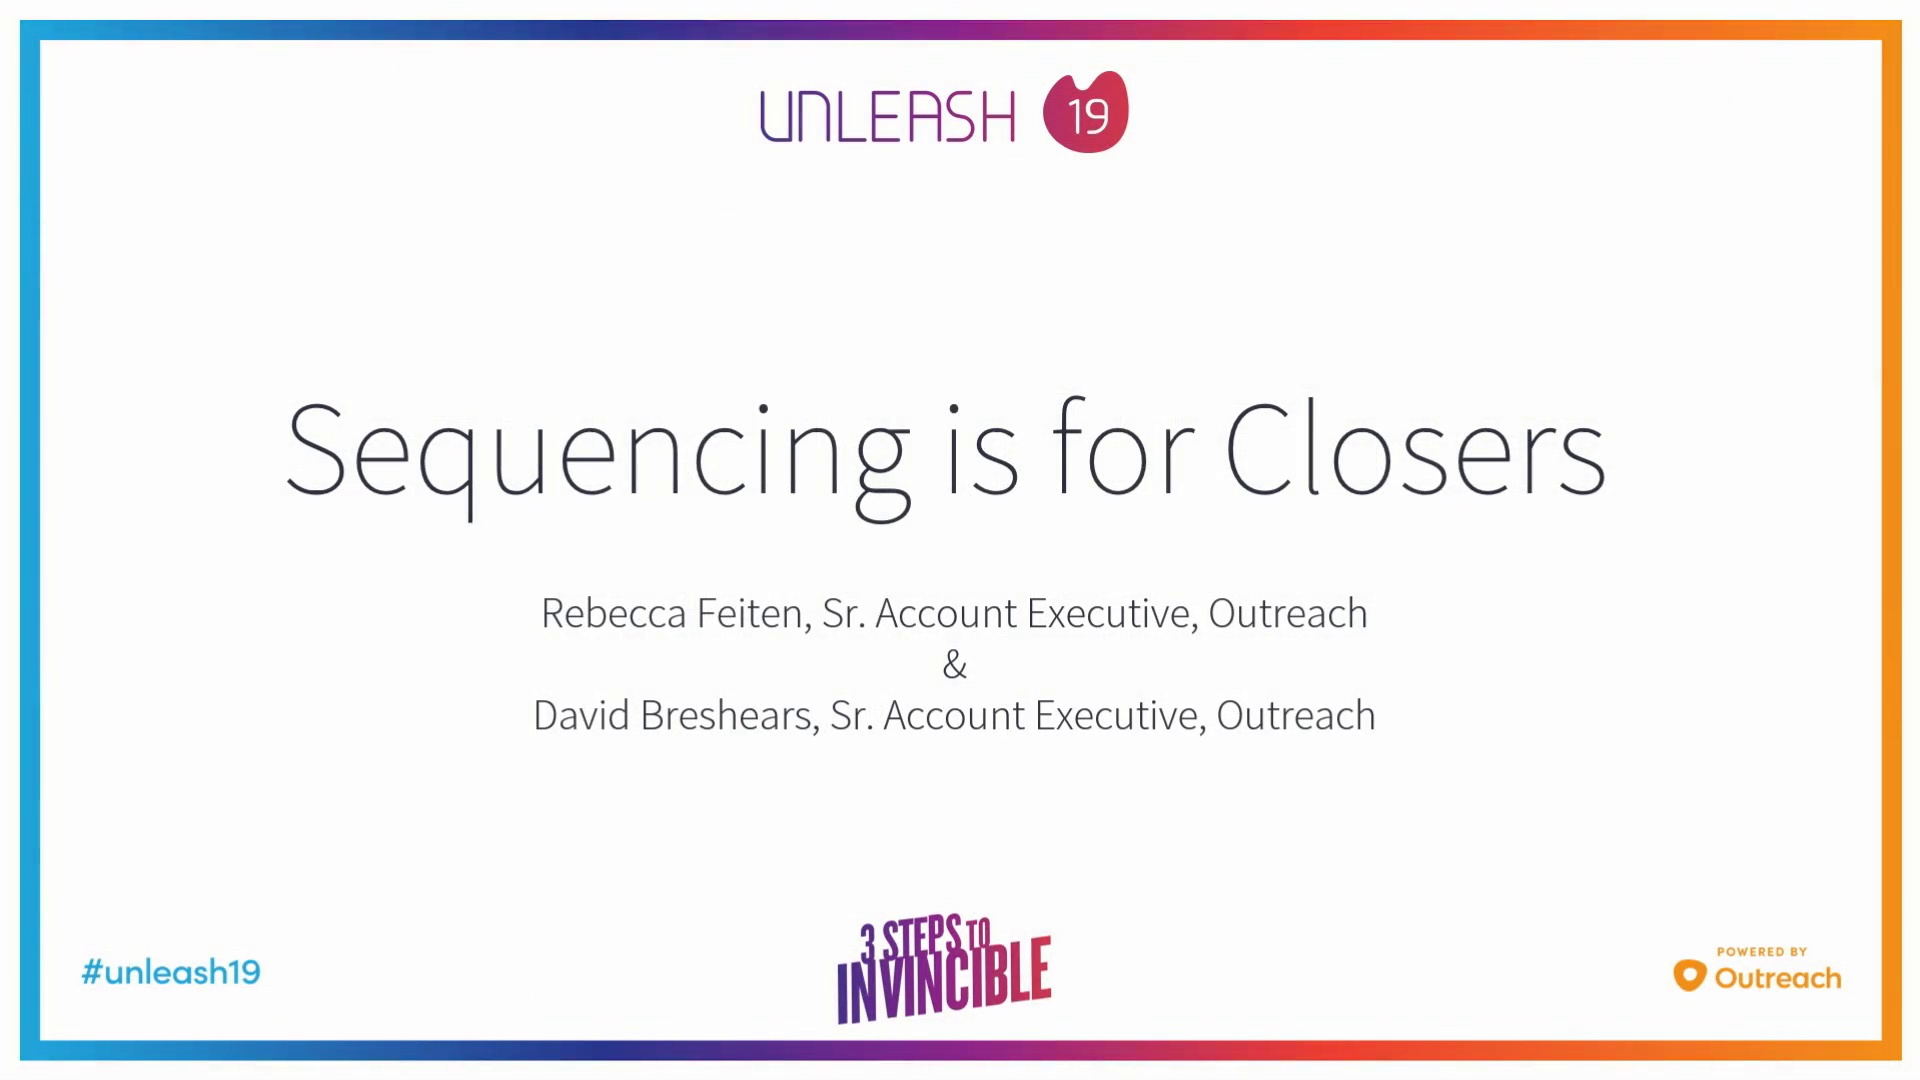 Sequencing is for Closers - Rebecca Feitan, David Breshears